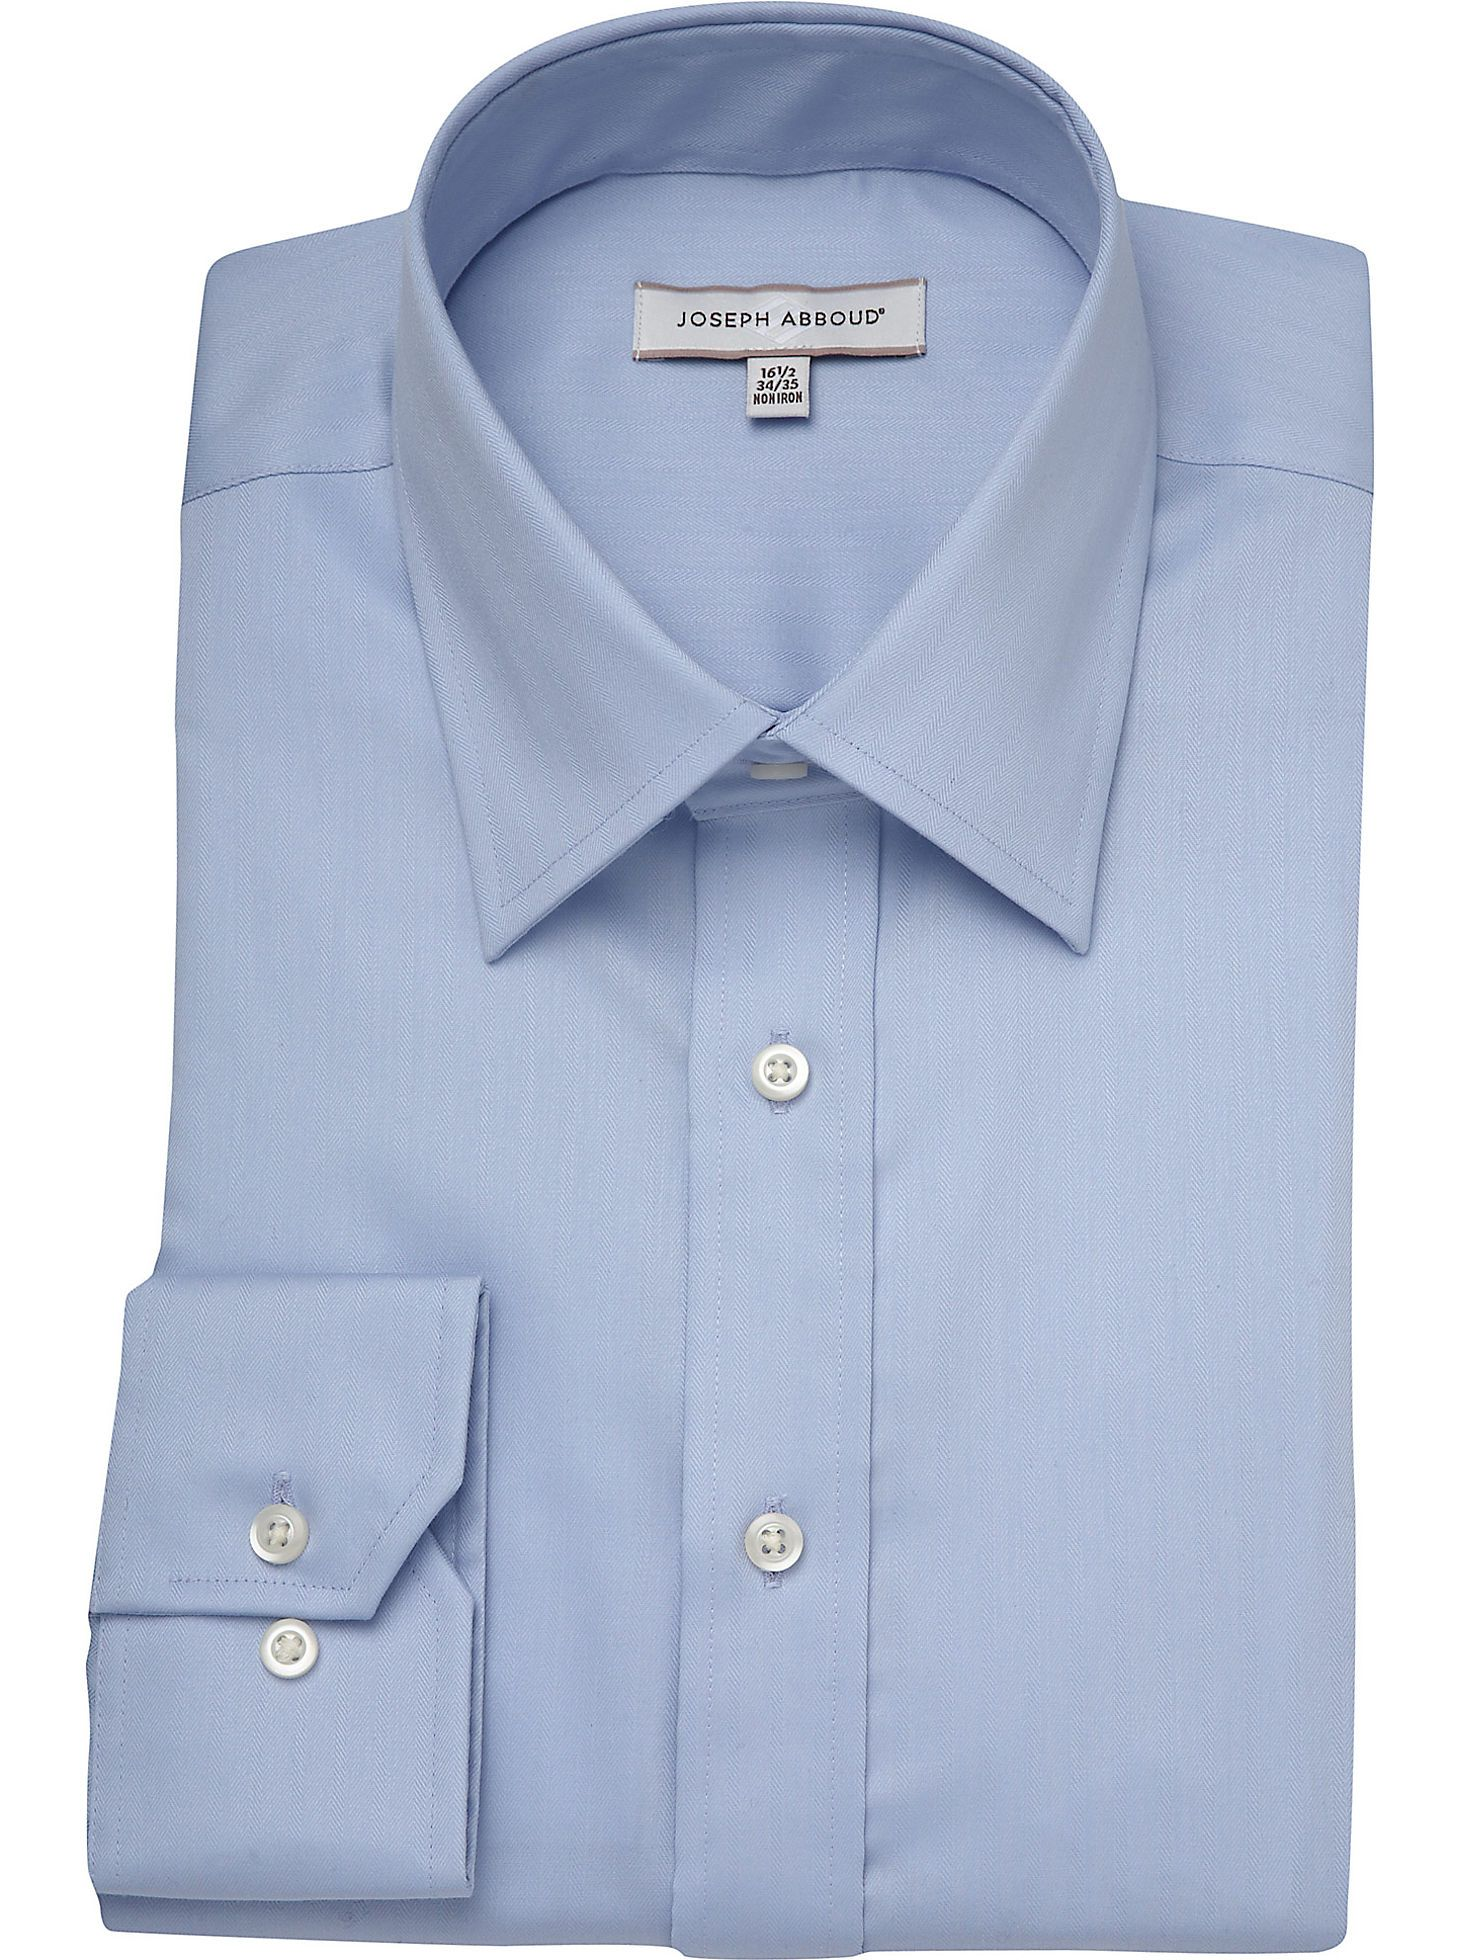 8cab9f83eabf Mens - Joseph Abboud Blue Dress Shirt - Men's Wearhouse | Clothes ...